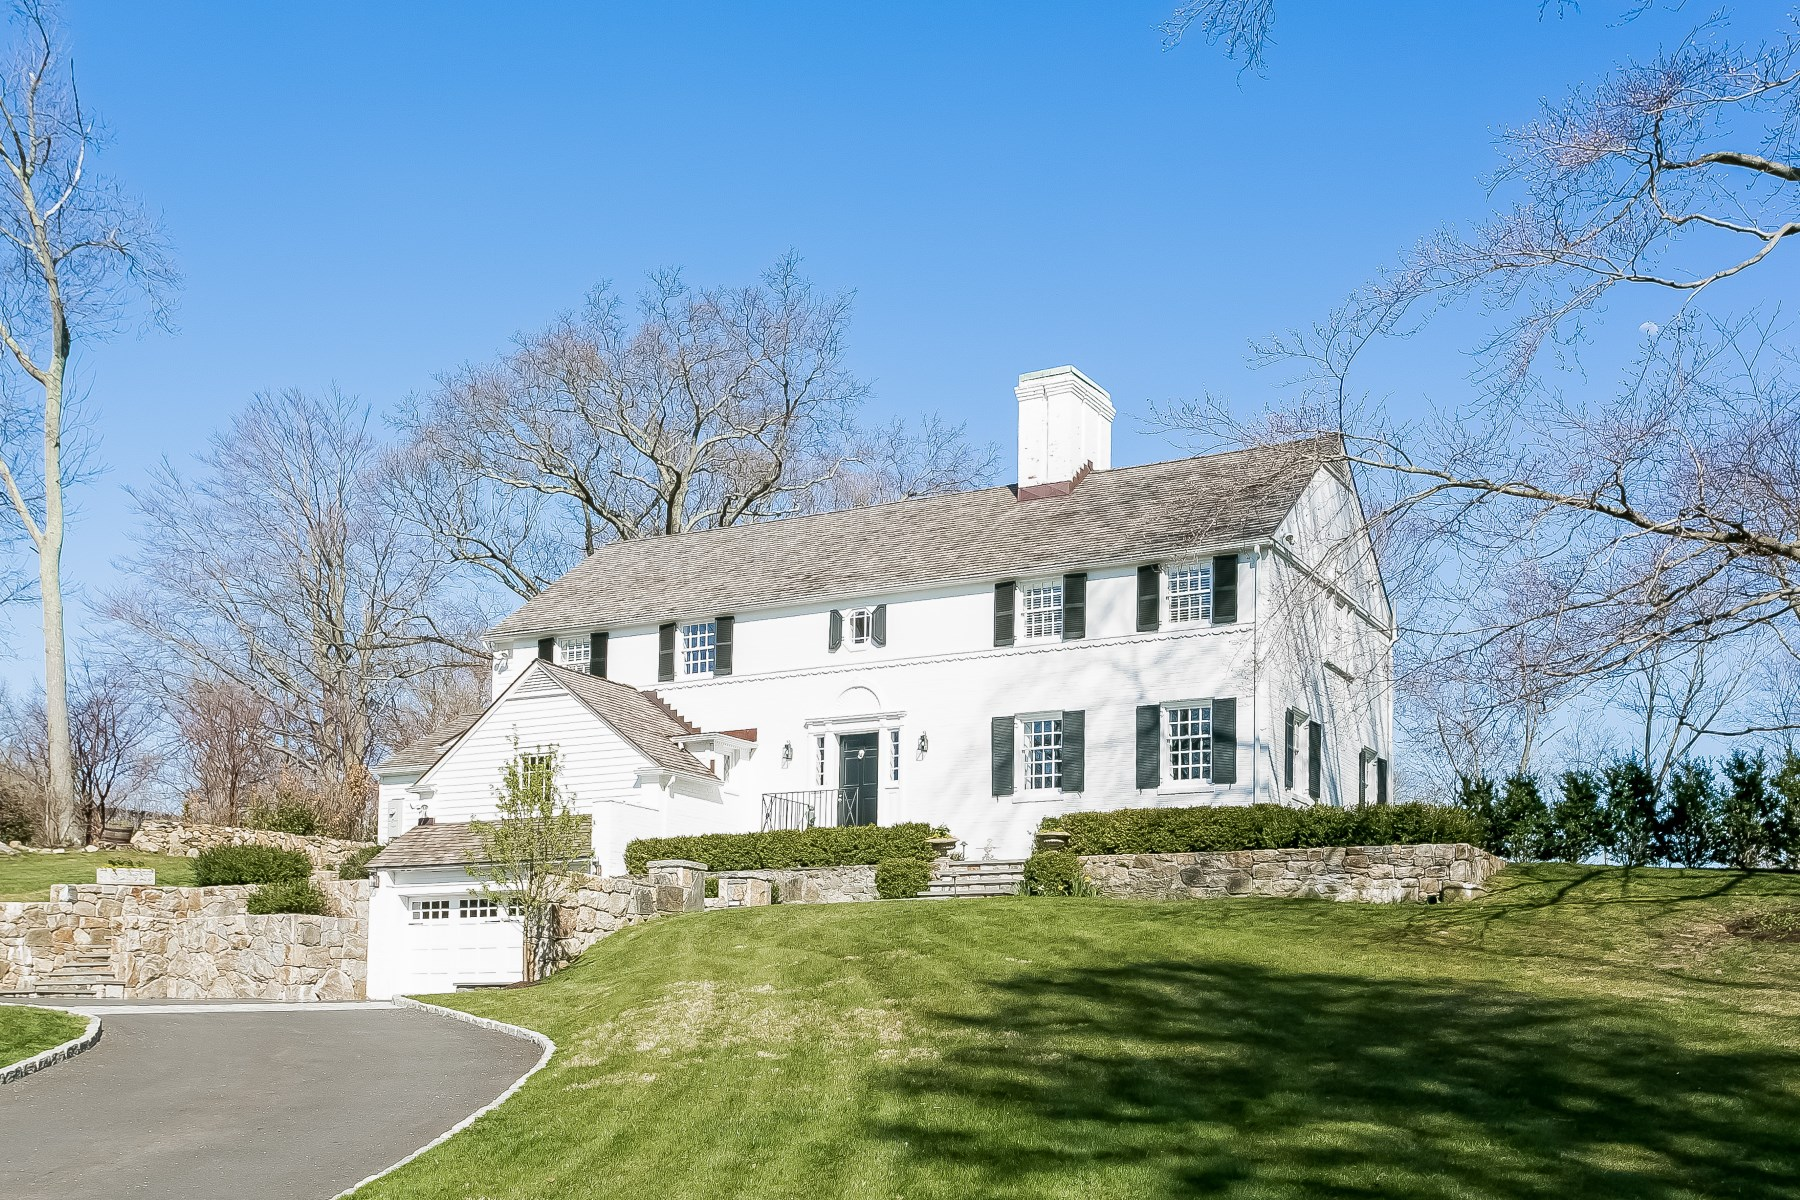 Single Family Home for Sale at 59 Hillside Road Central Greenwich, Greenwich, Connecticut, 06830 United States